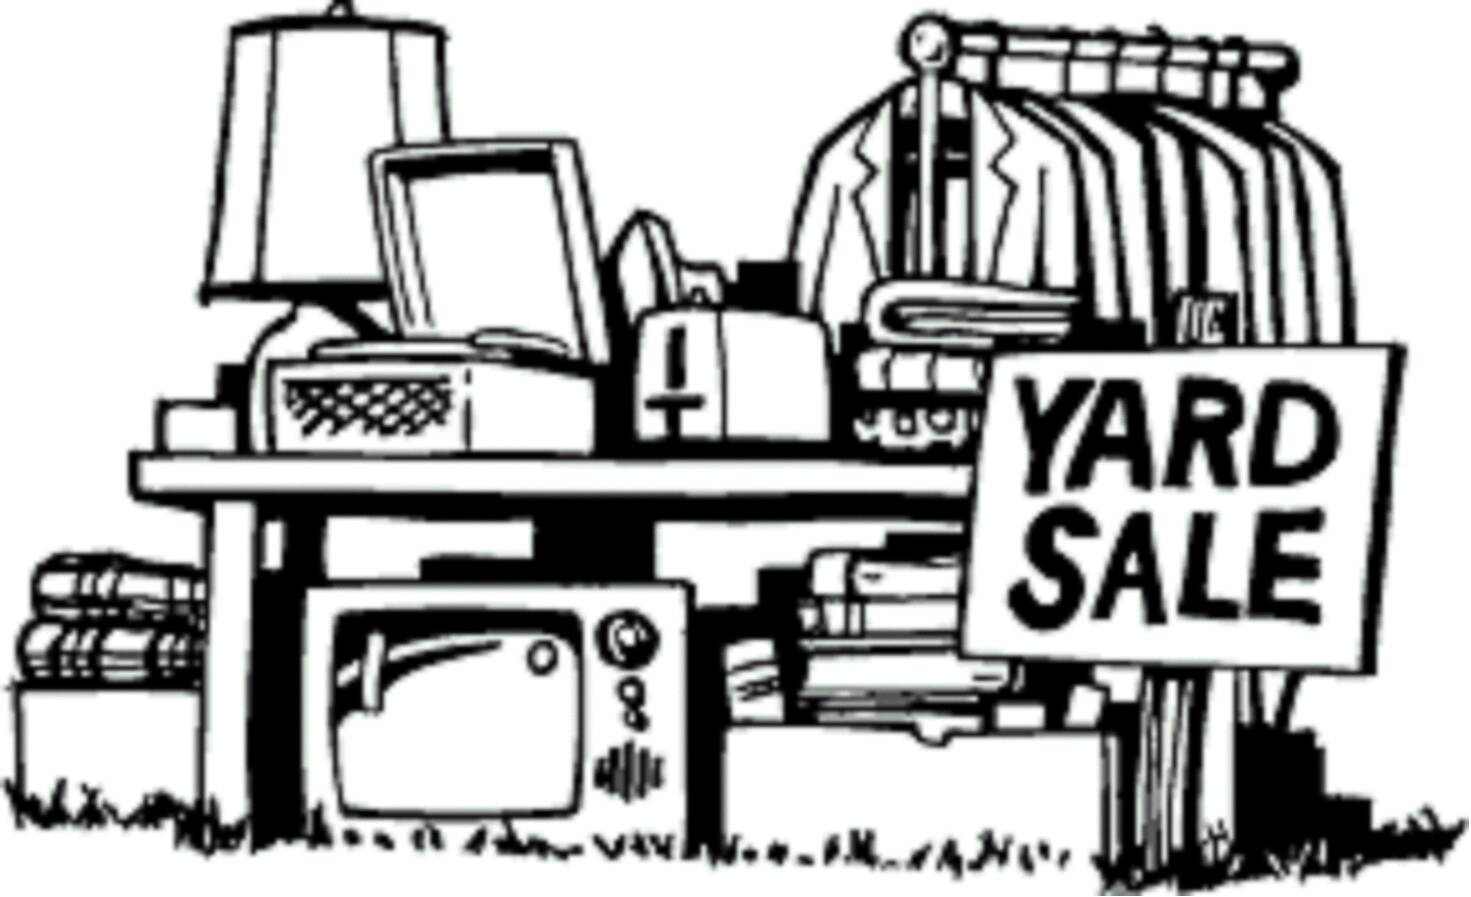 1000  Images About Yard Sale On Pinteres-1000  images about yard sale on Pinterest | Be simple, Funny and Chalkboard easel-0